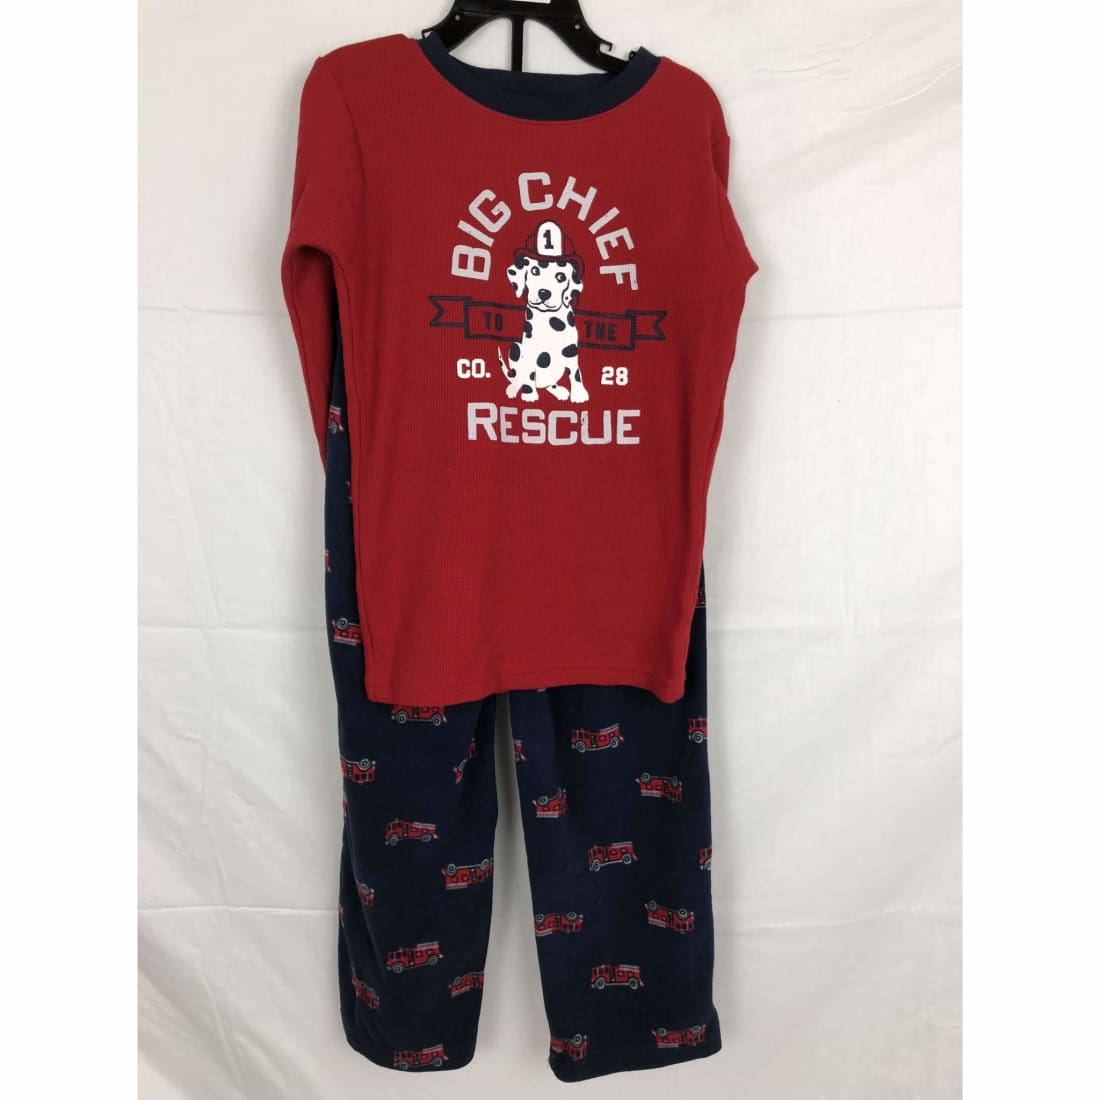 Carters 2 Piece Fleece Boys Big Chief Sleepwear Set Variety 7 Sleepwear